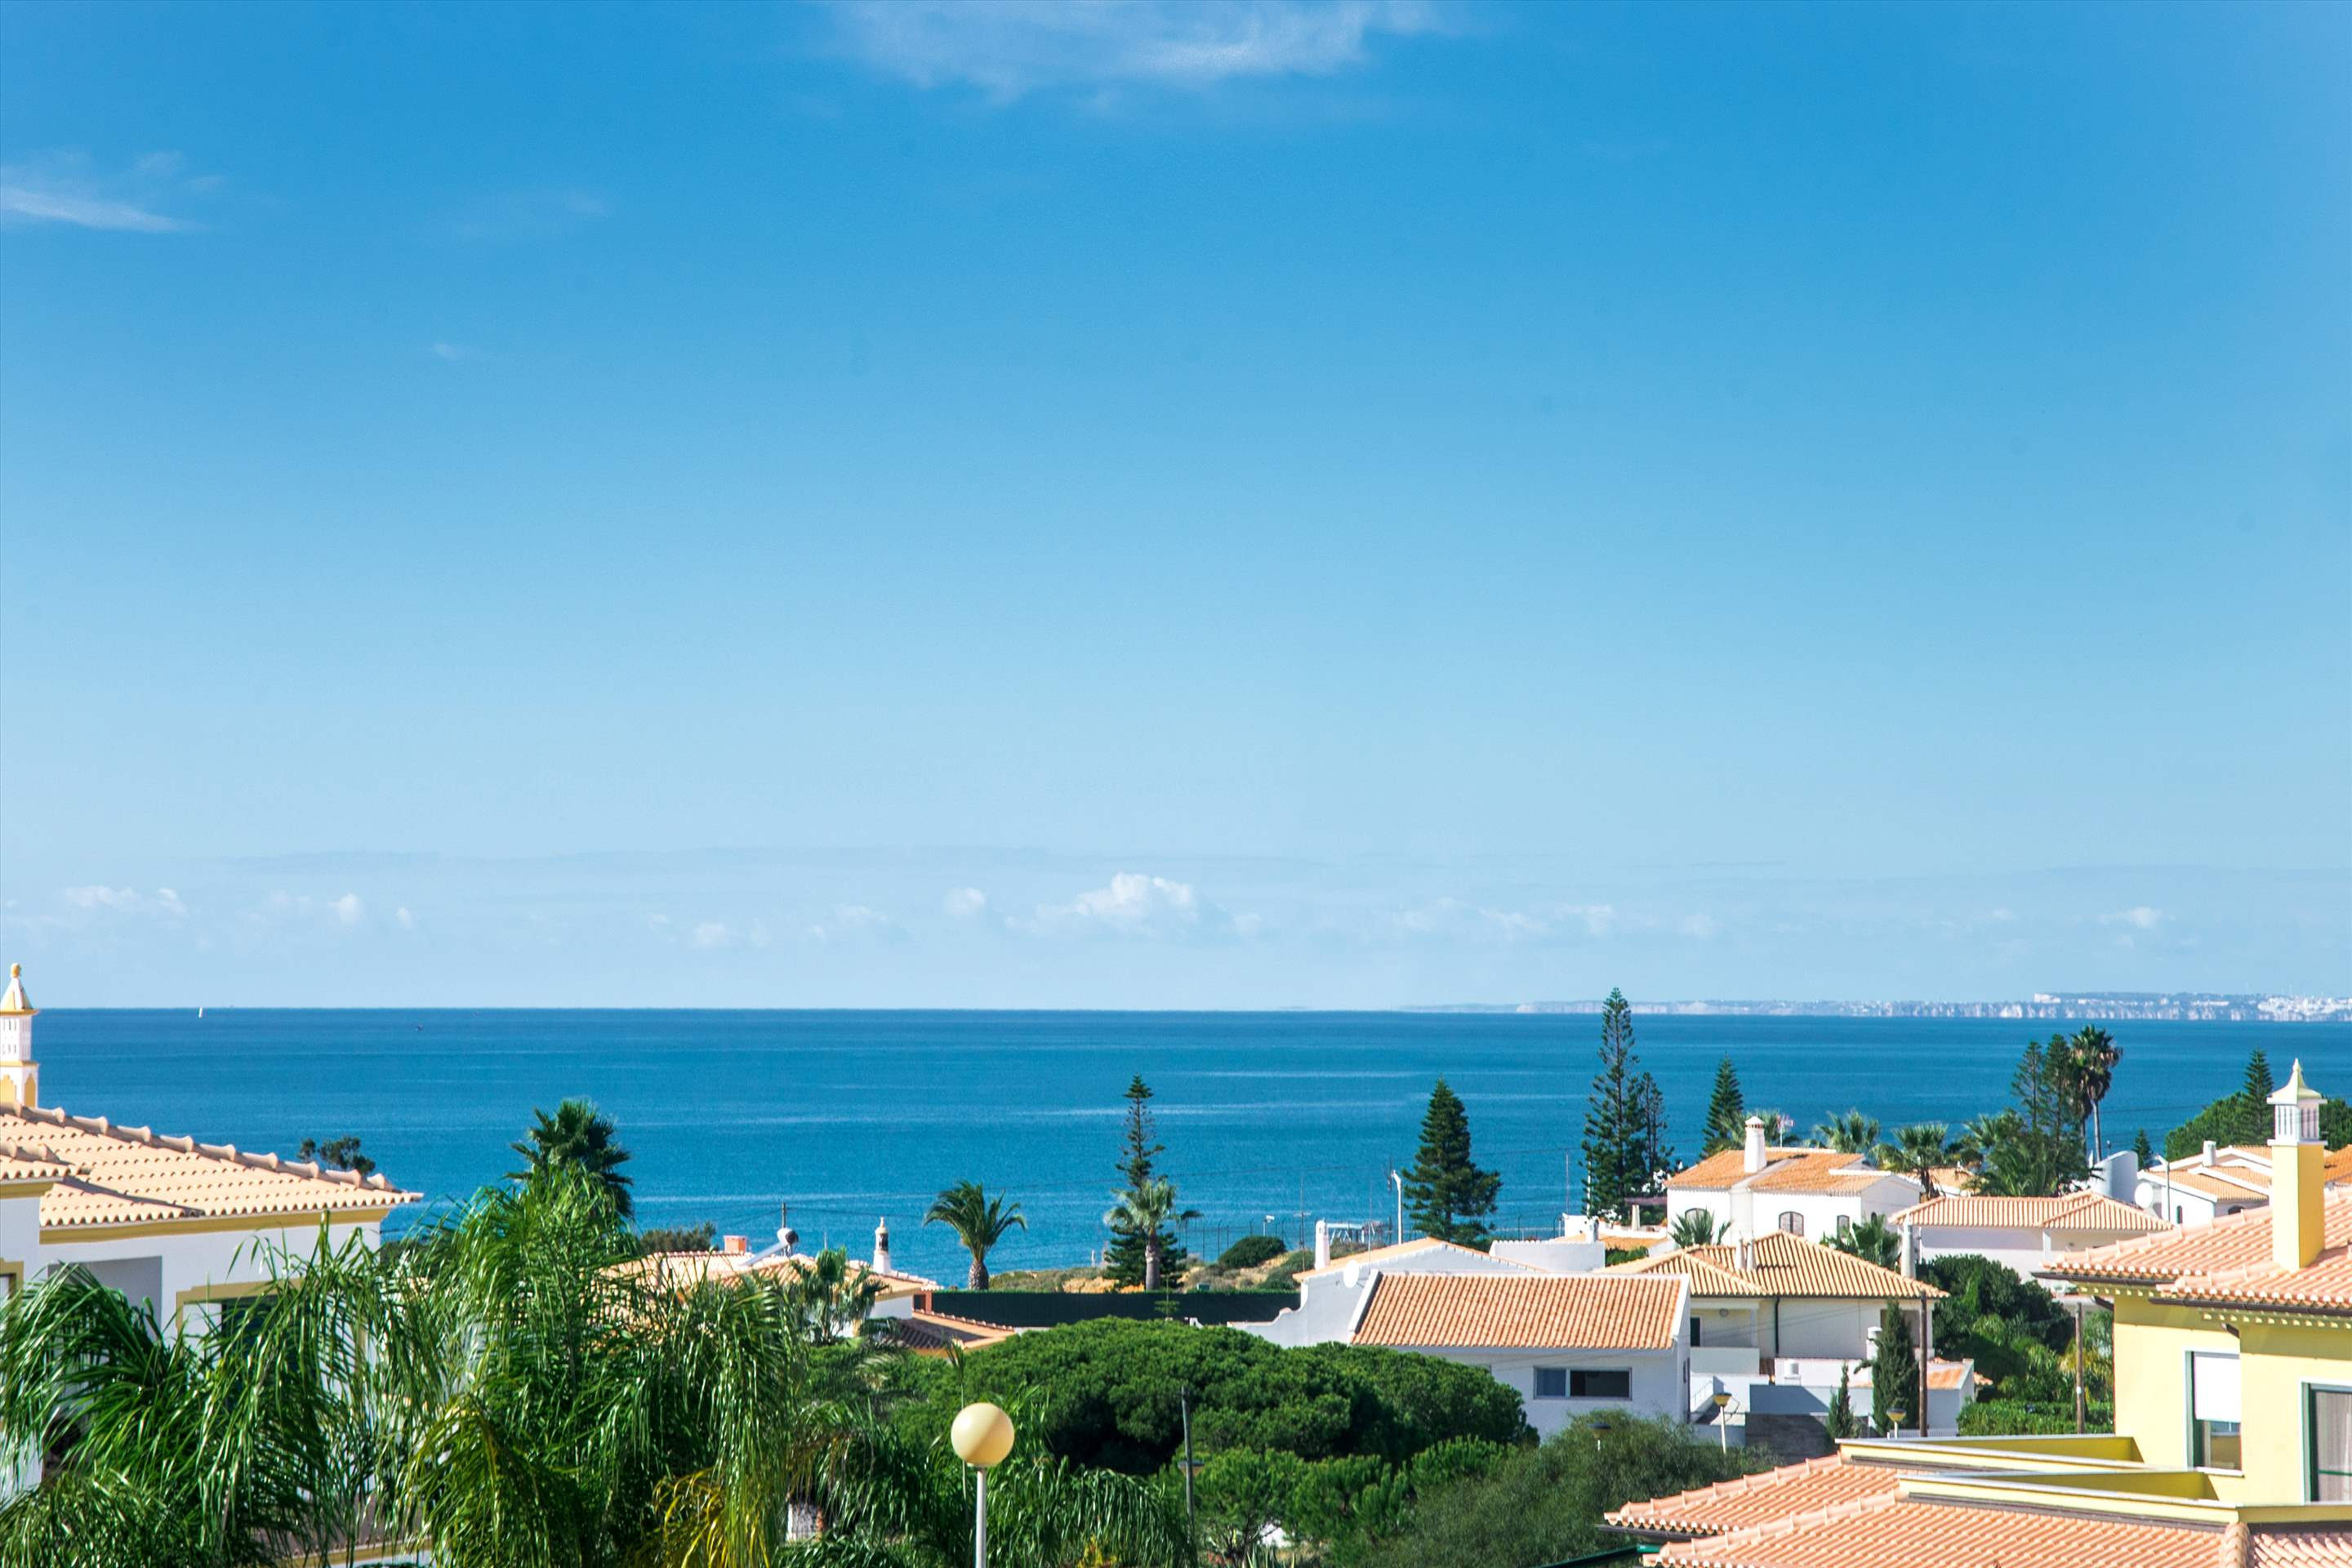 Julieta do Mar, Up to 6 Persons, 3 bedroom villa in Gale, Vale da Parra and Guia, Algarve Photo #13